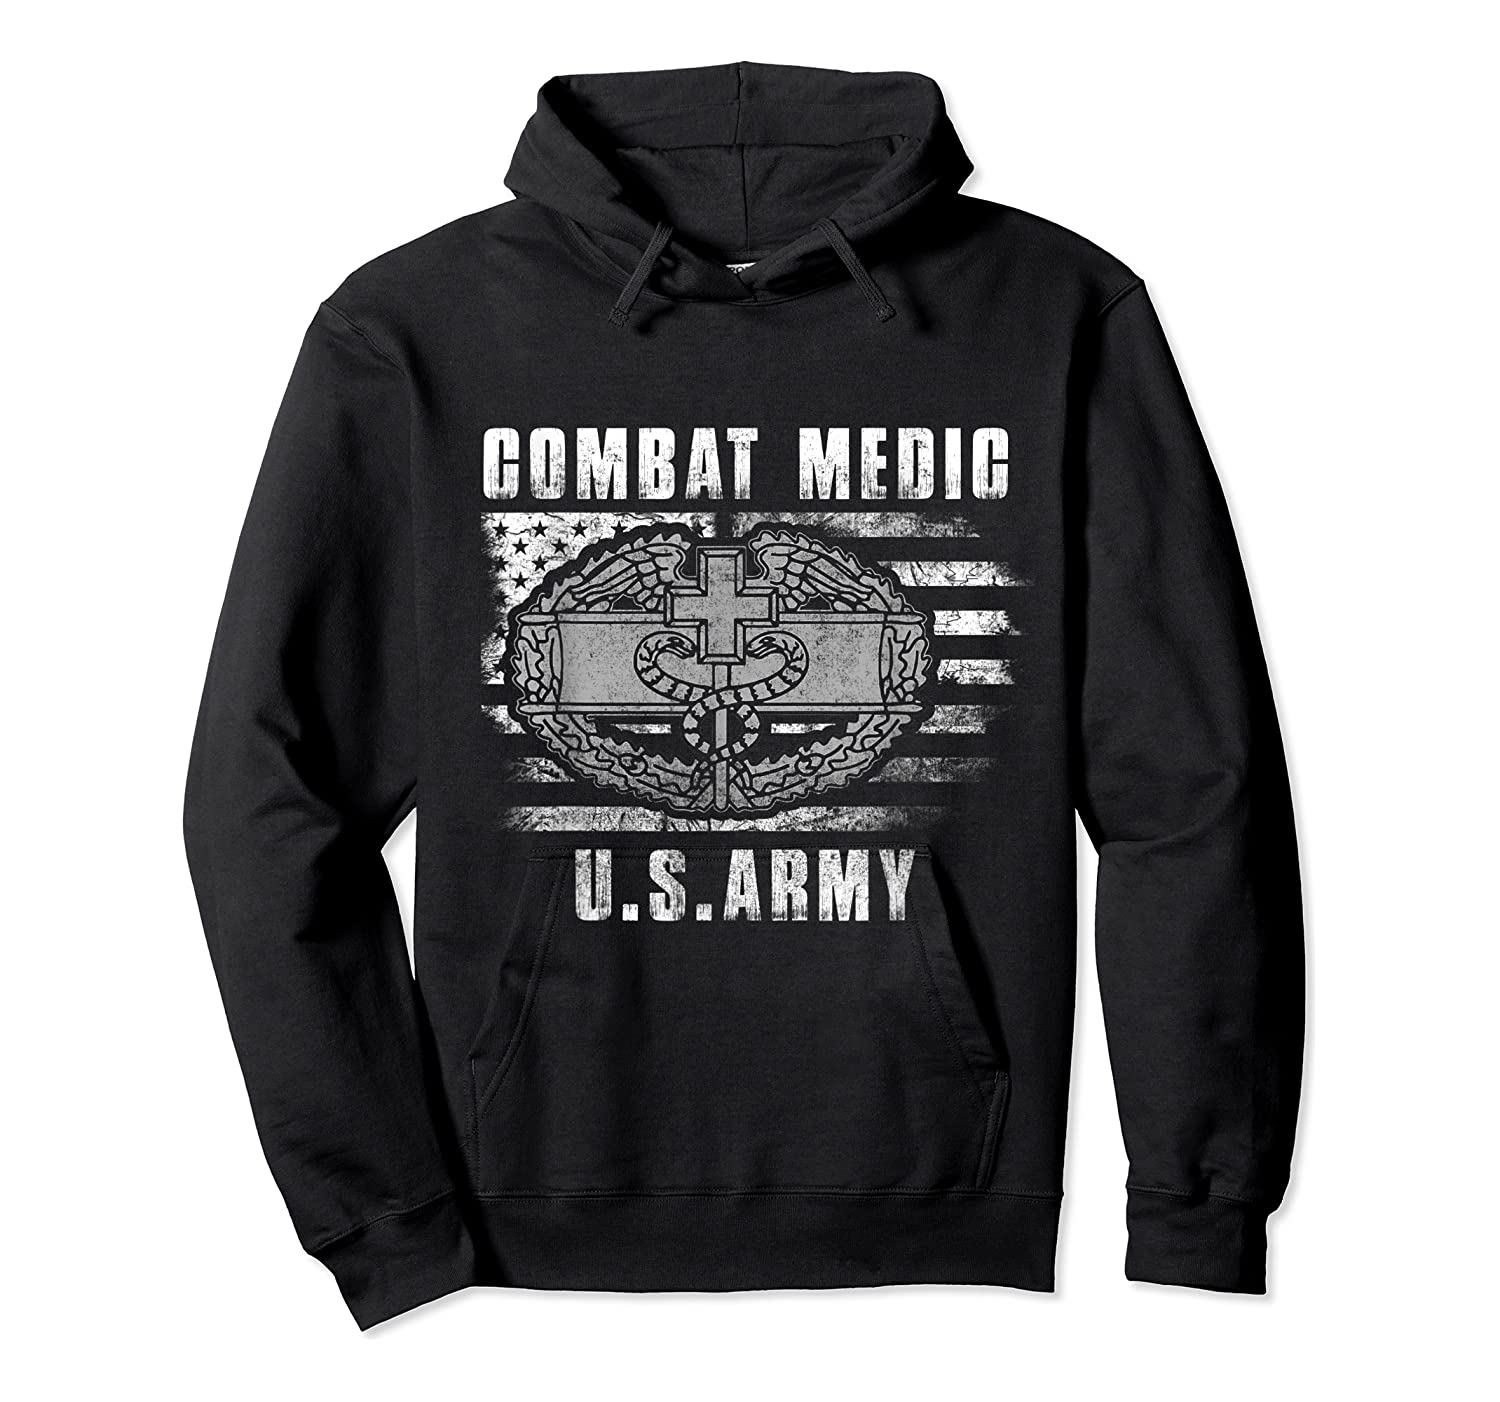 Combat Medic Us Army Flag America 4th July Shirts Unisex Pullover Hoodie